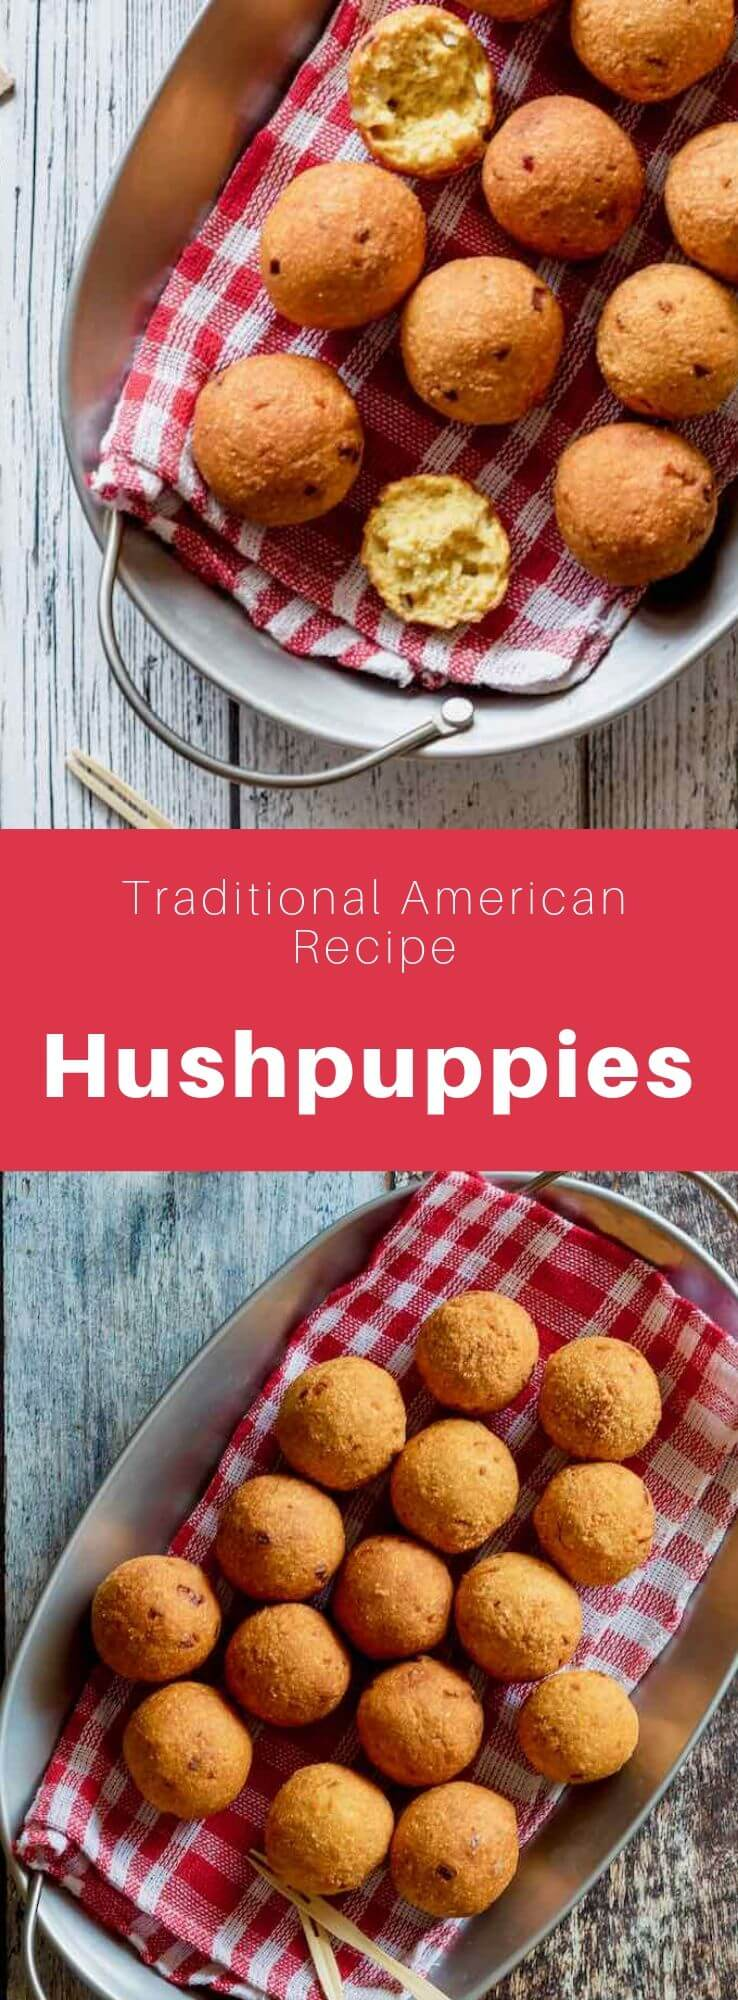 Hushpuppies are delicious little fried balls prepared with yellow cornmeal and often served as an accompaniment to seafood. #SouthernFood #SouthernRecipe #SouthernCuisine #AmericanRecipe #AmericanFood #AmericanCuisine #WorldCuisine #196flavors